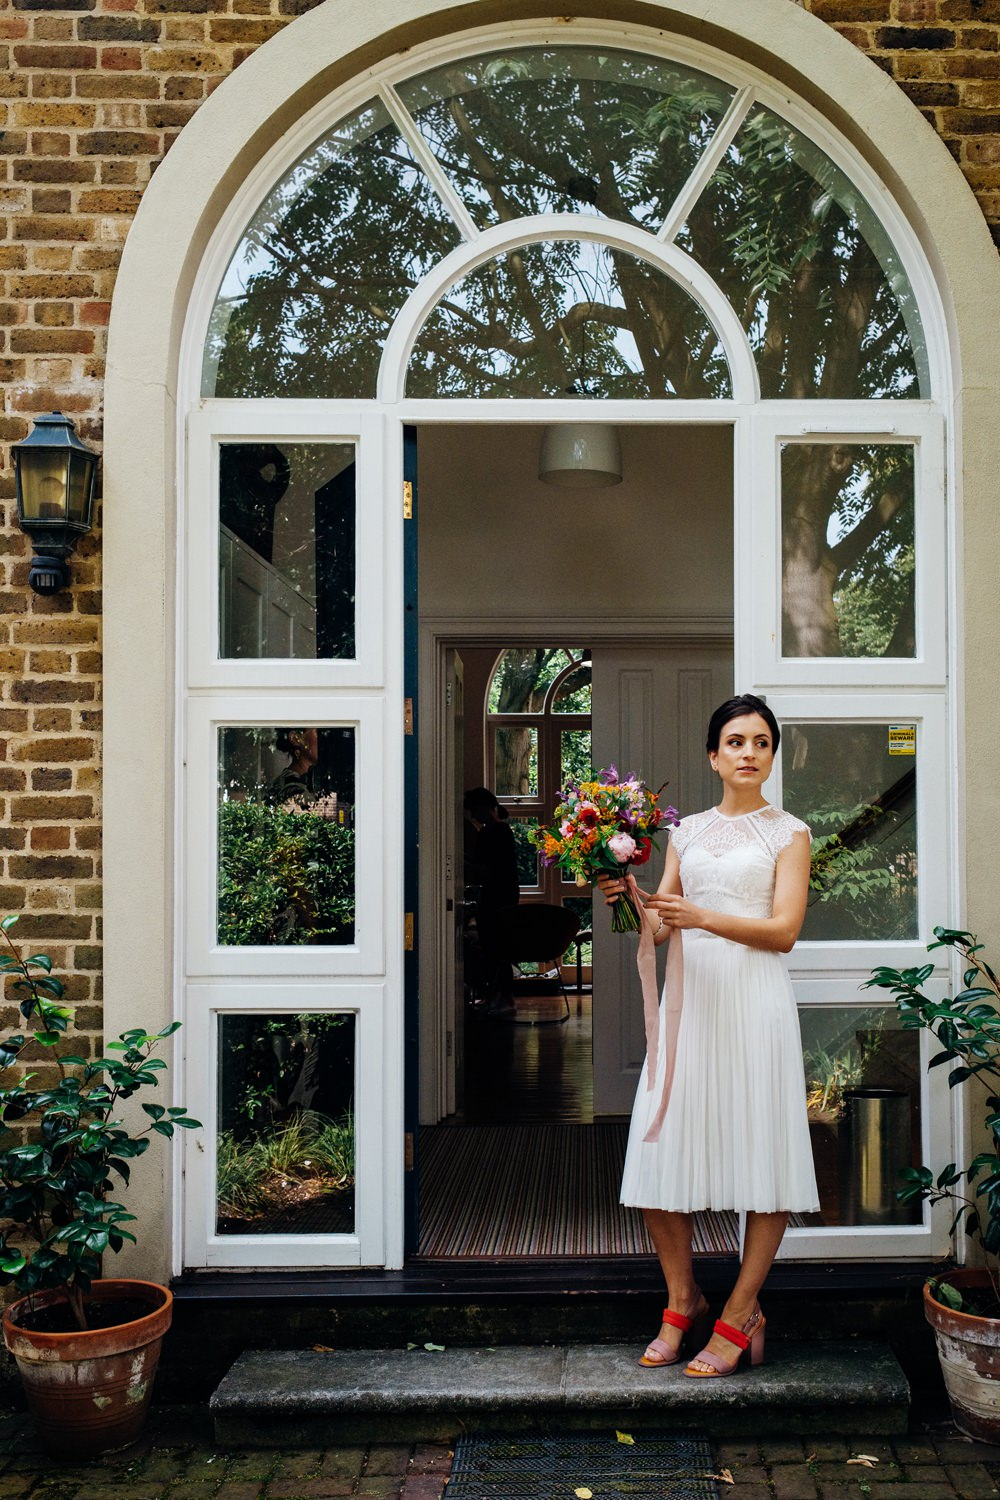 Bride Bridal Dress Gown Catherine Deane Top Skirt Lace Scallop Short East London Wedding Marianne Chua Photography